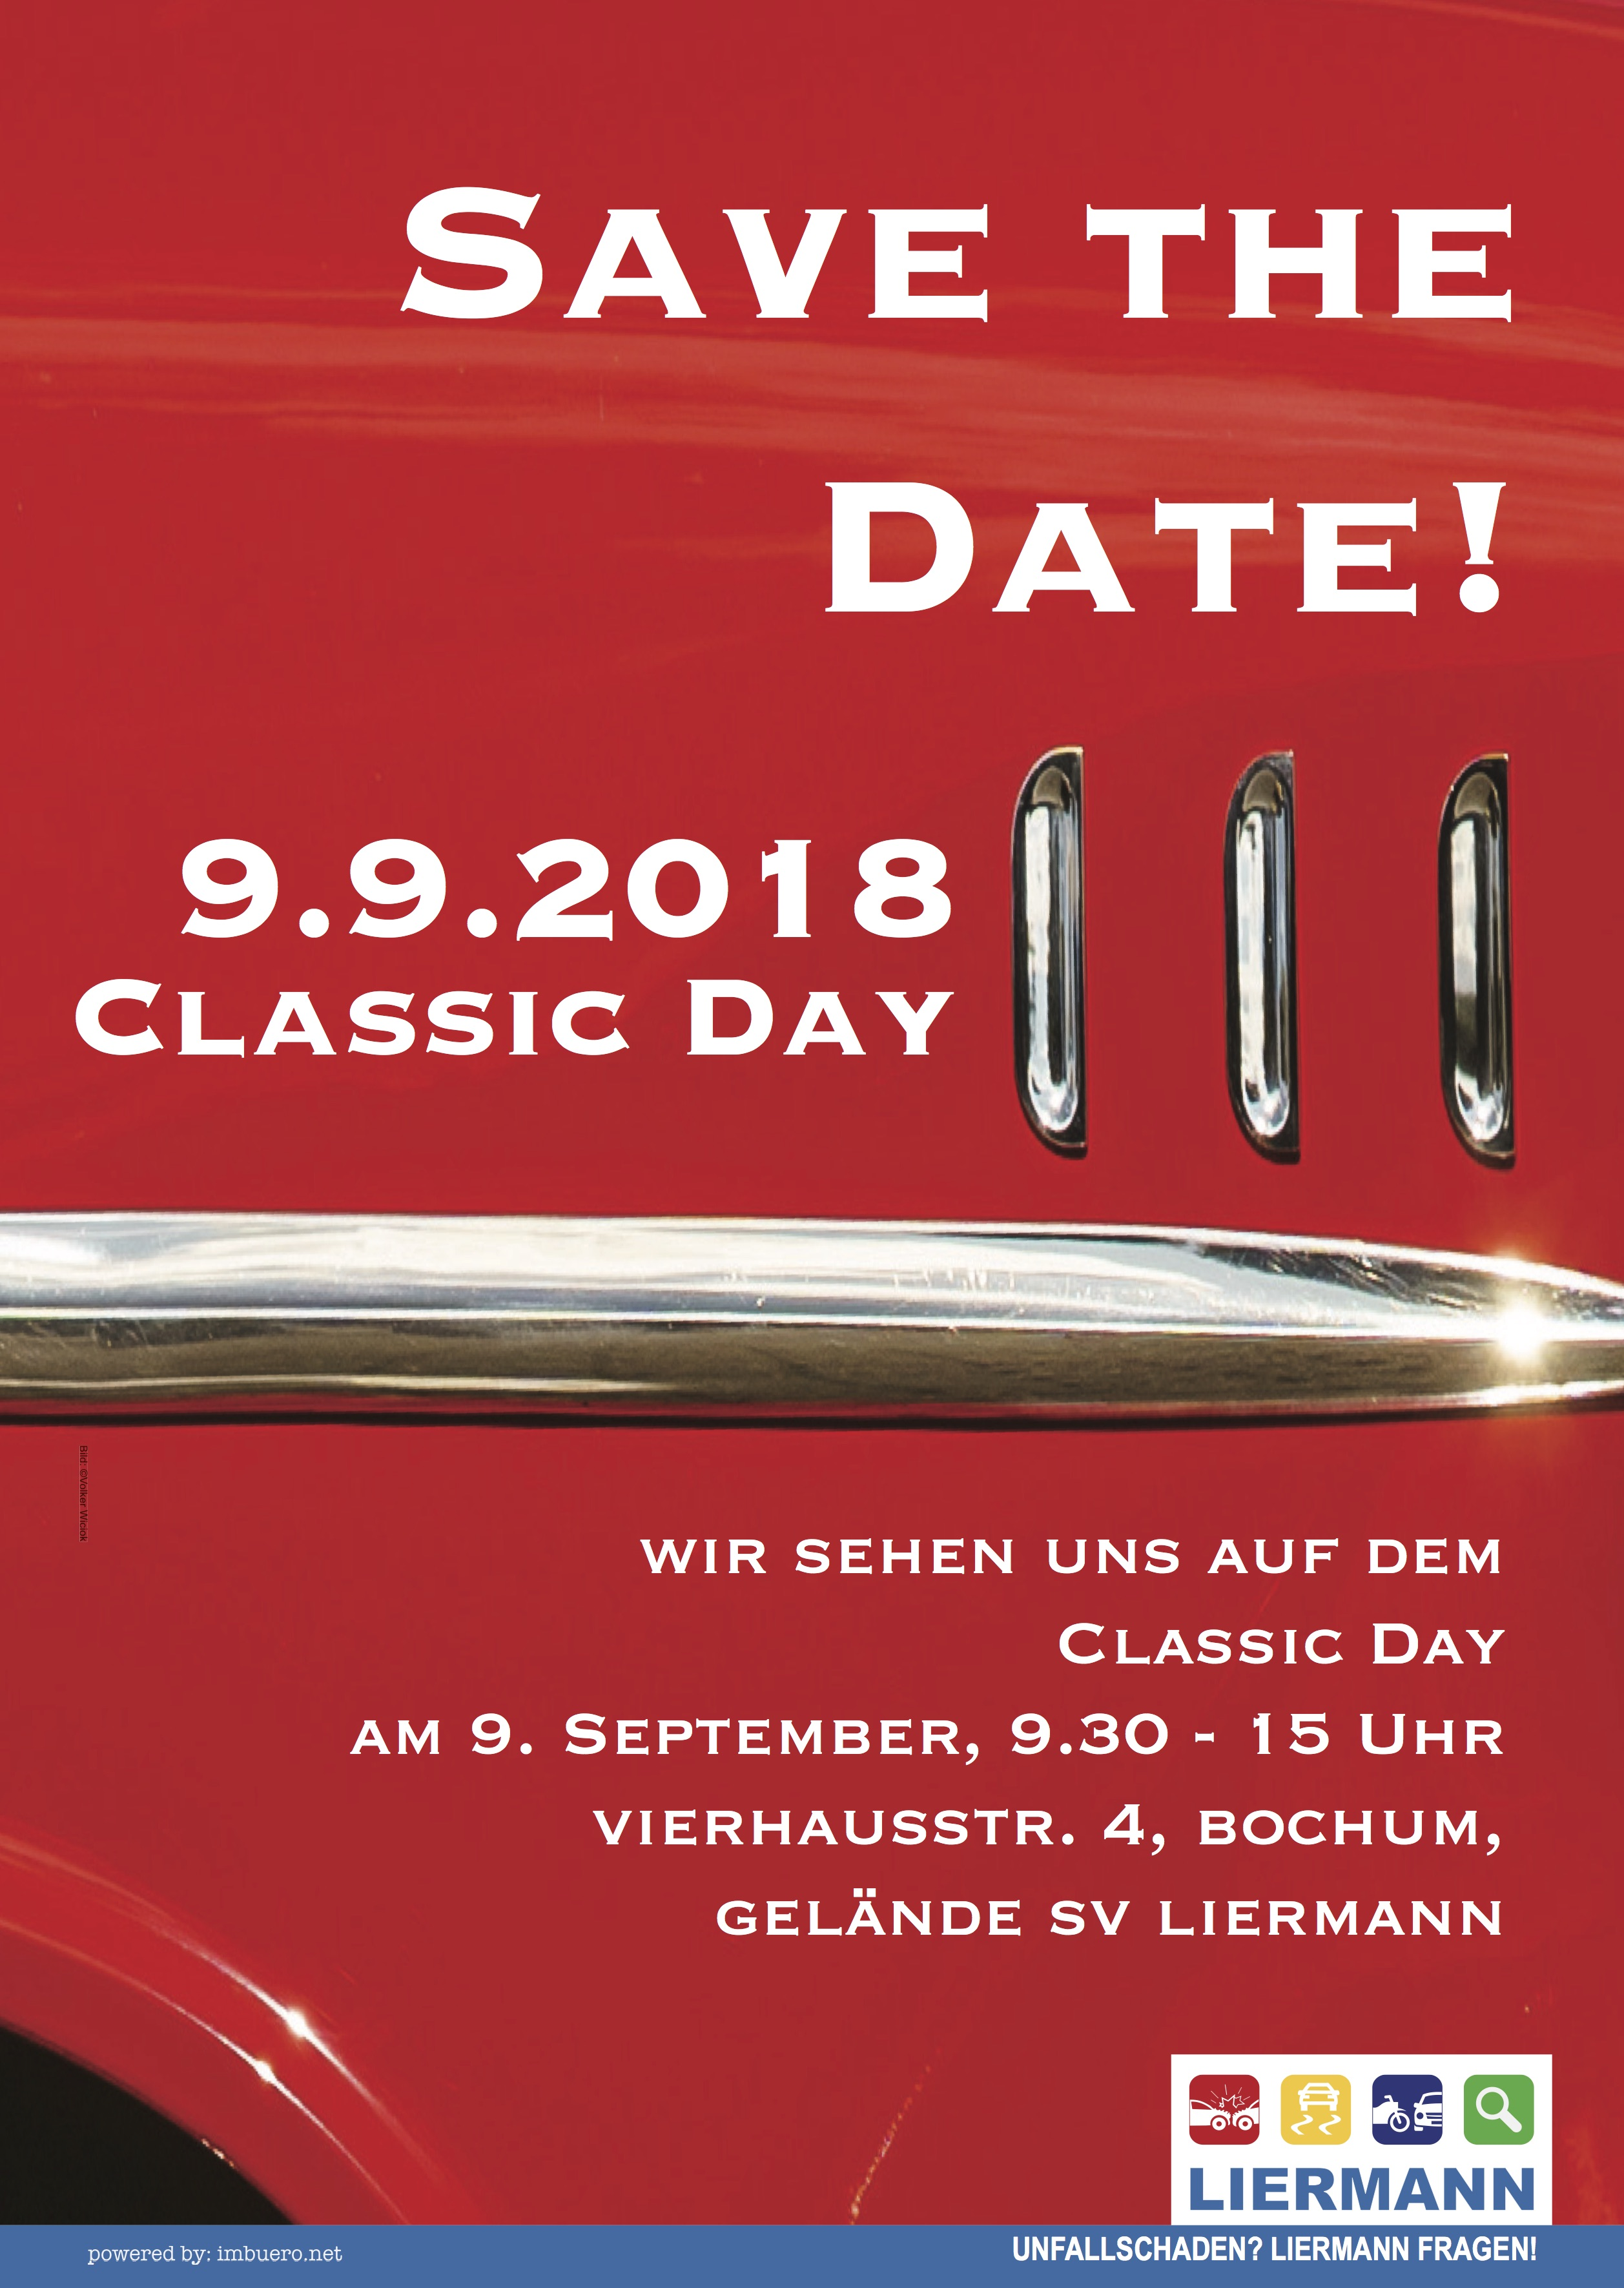 Classic Day 2018 - Save the Date